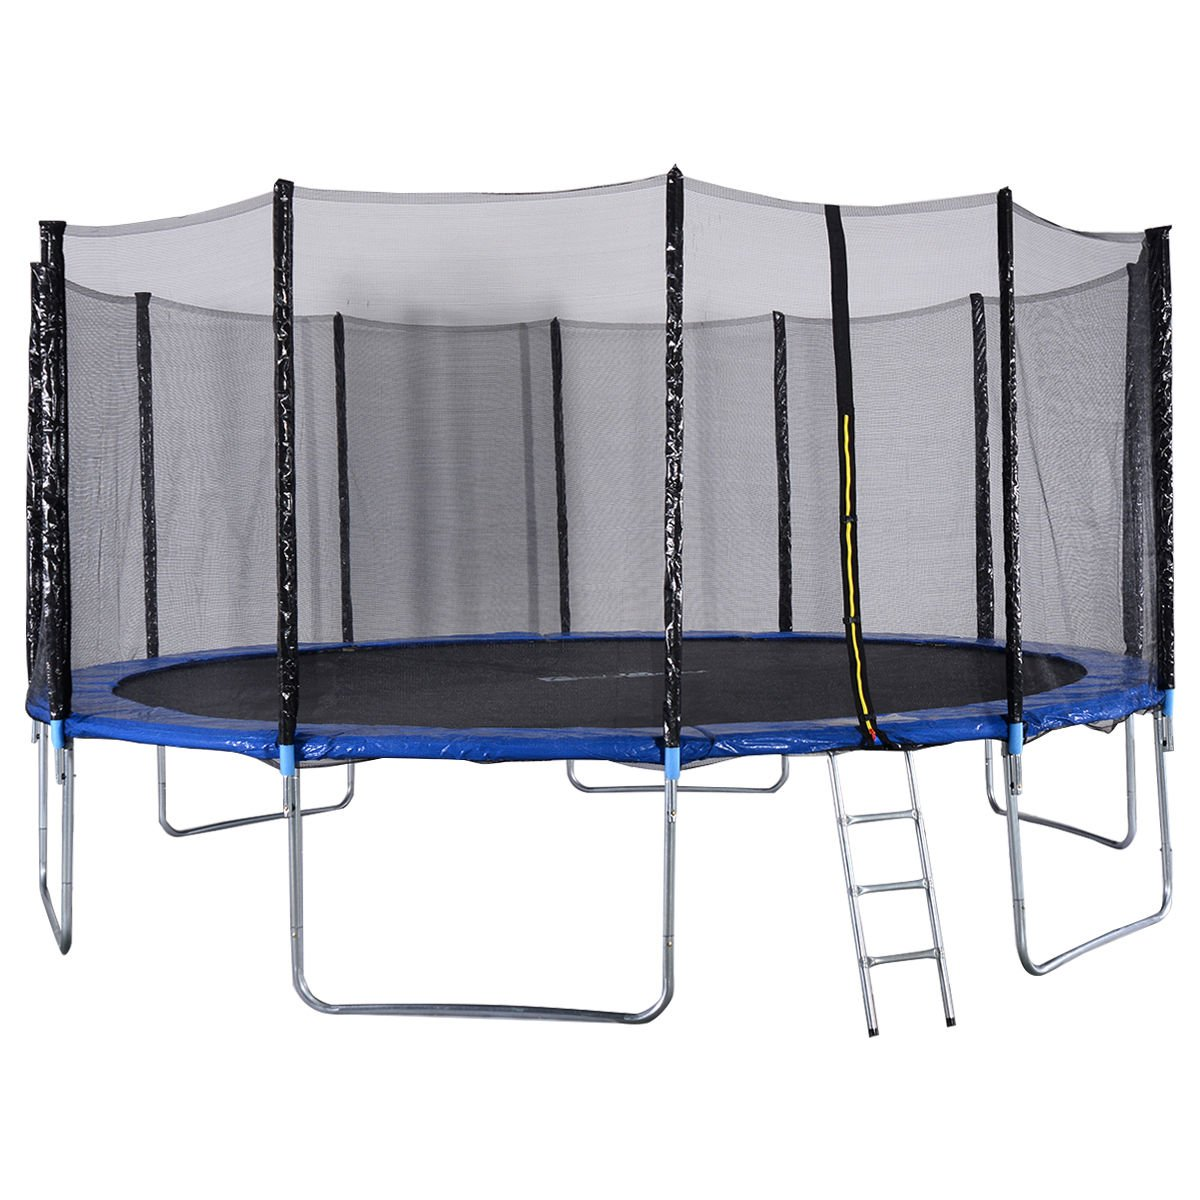 Giantex Trampoline Combo Bounce Jump Safety Enclosure Net W/Spring Pad Ladder, 16FT by Giantex